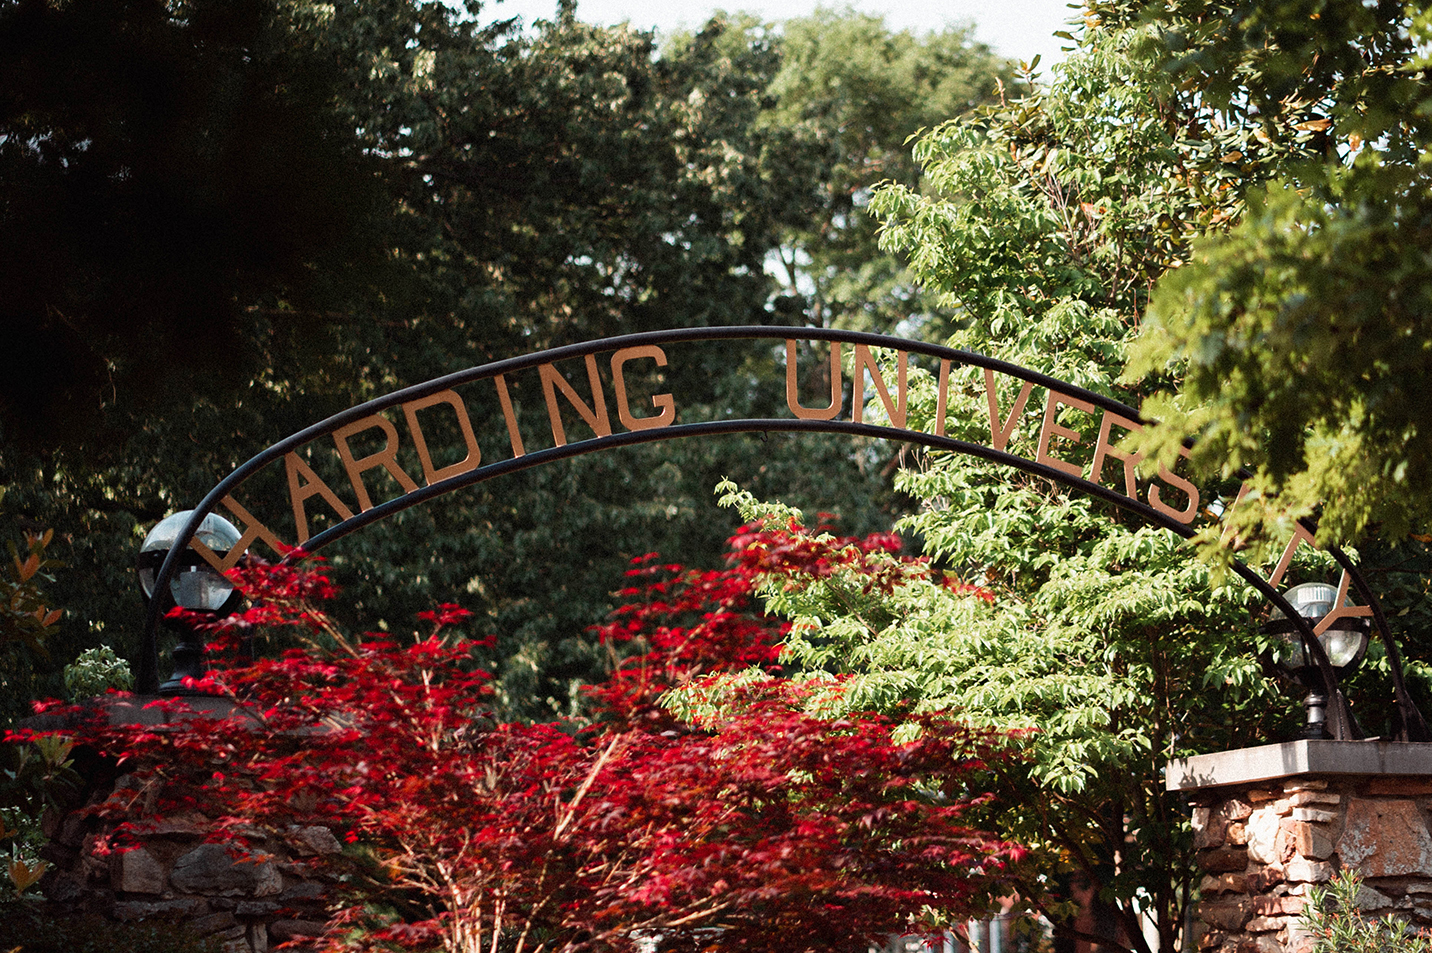 This is a photo of the Harding University arch.